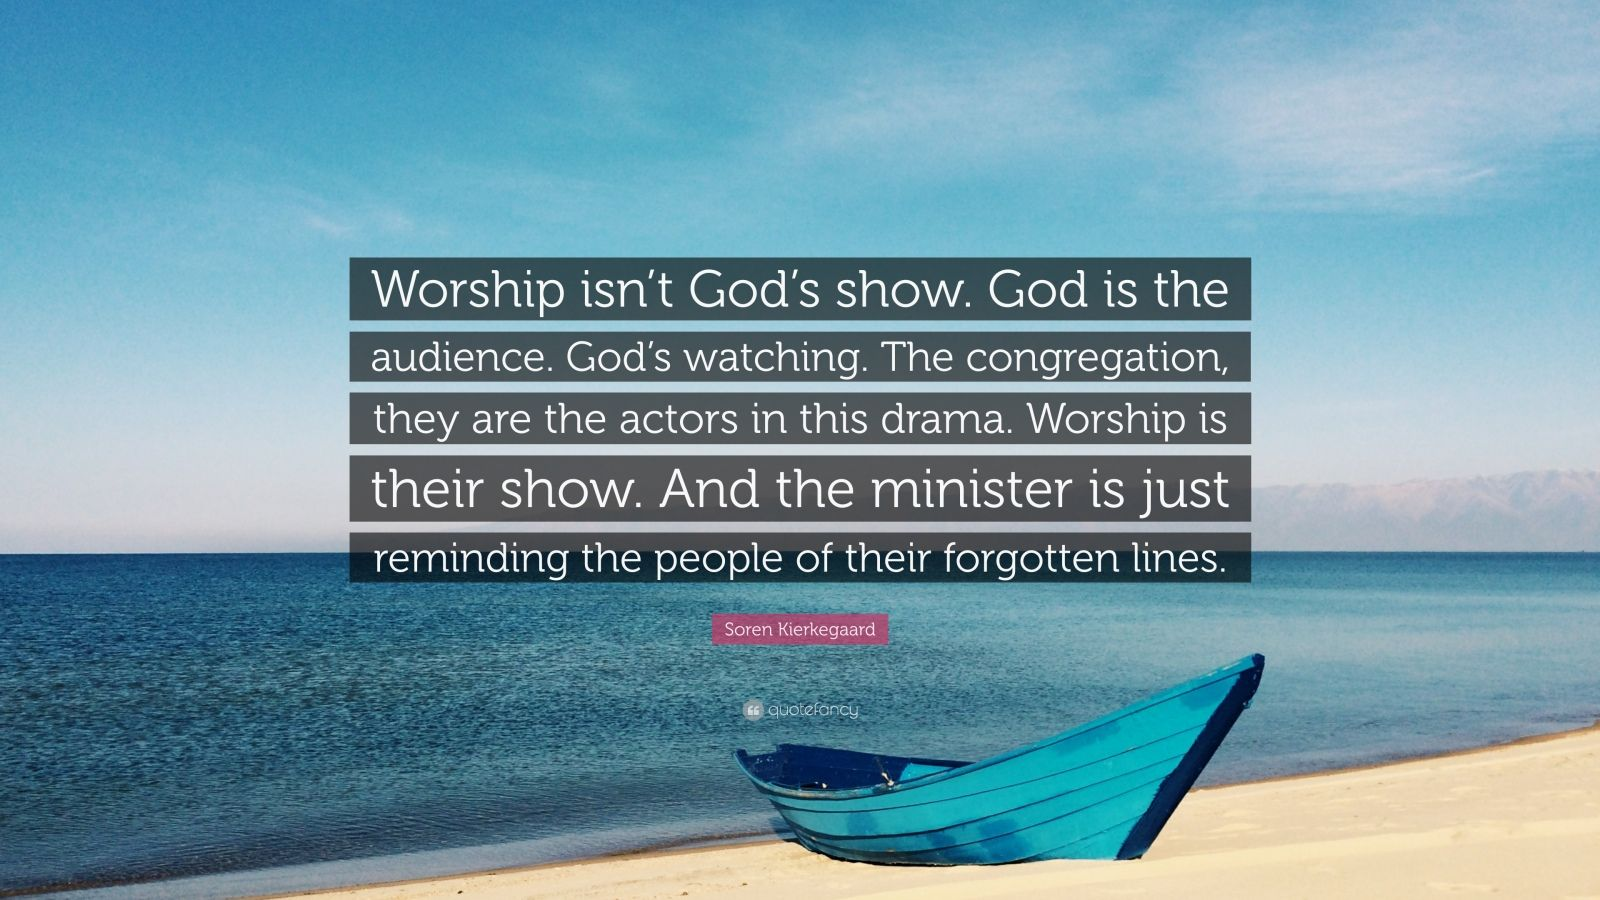 """Soren Kierkegaard Quote: """"Worship isn't God's show. God is the audience. God's watching. The congregation, they are the actors in this drama. Worship is their show. And the minister is just reminding the people of their forgotten lines."""""""